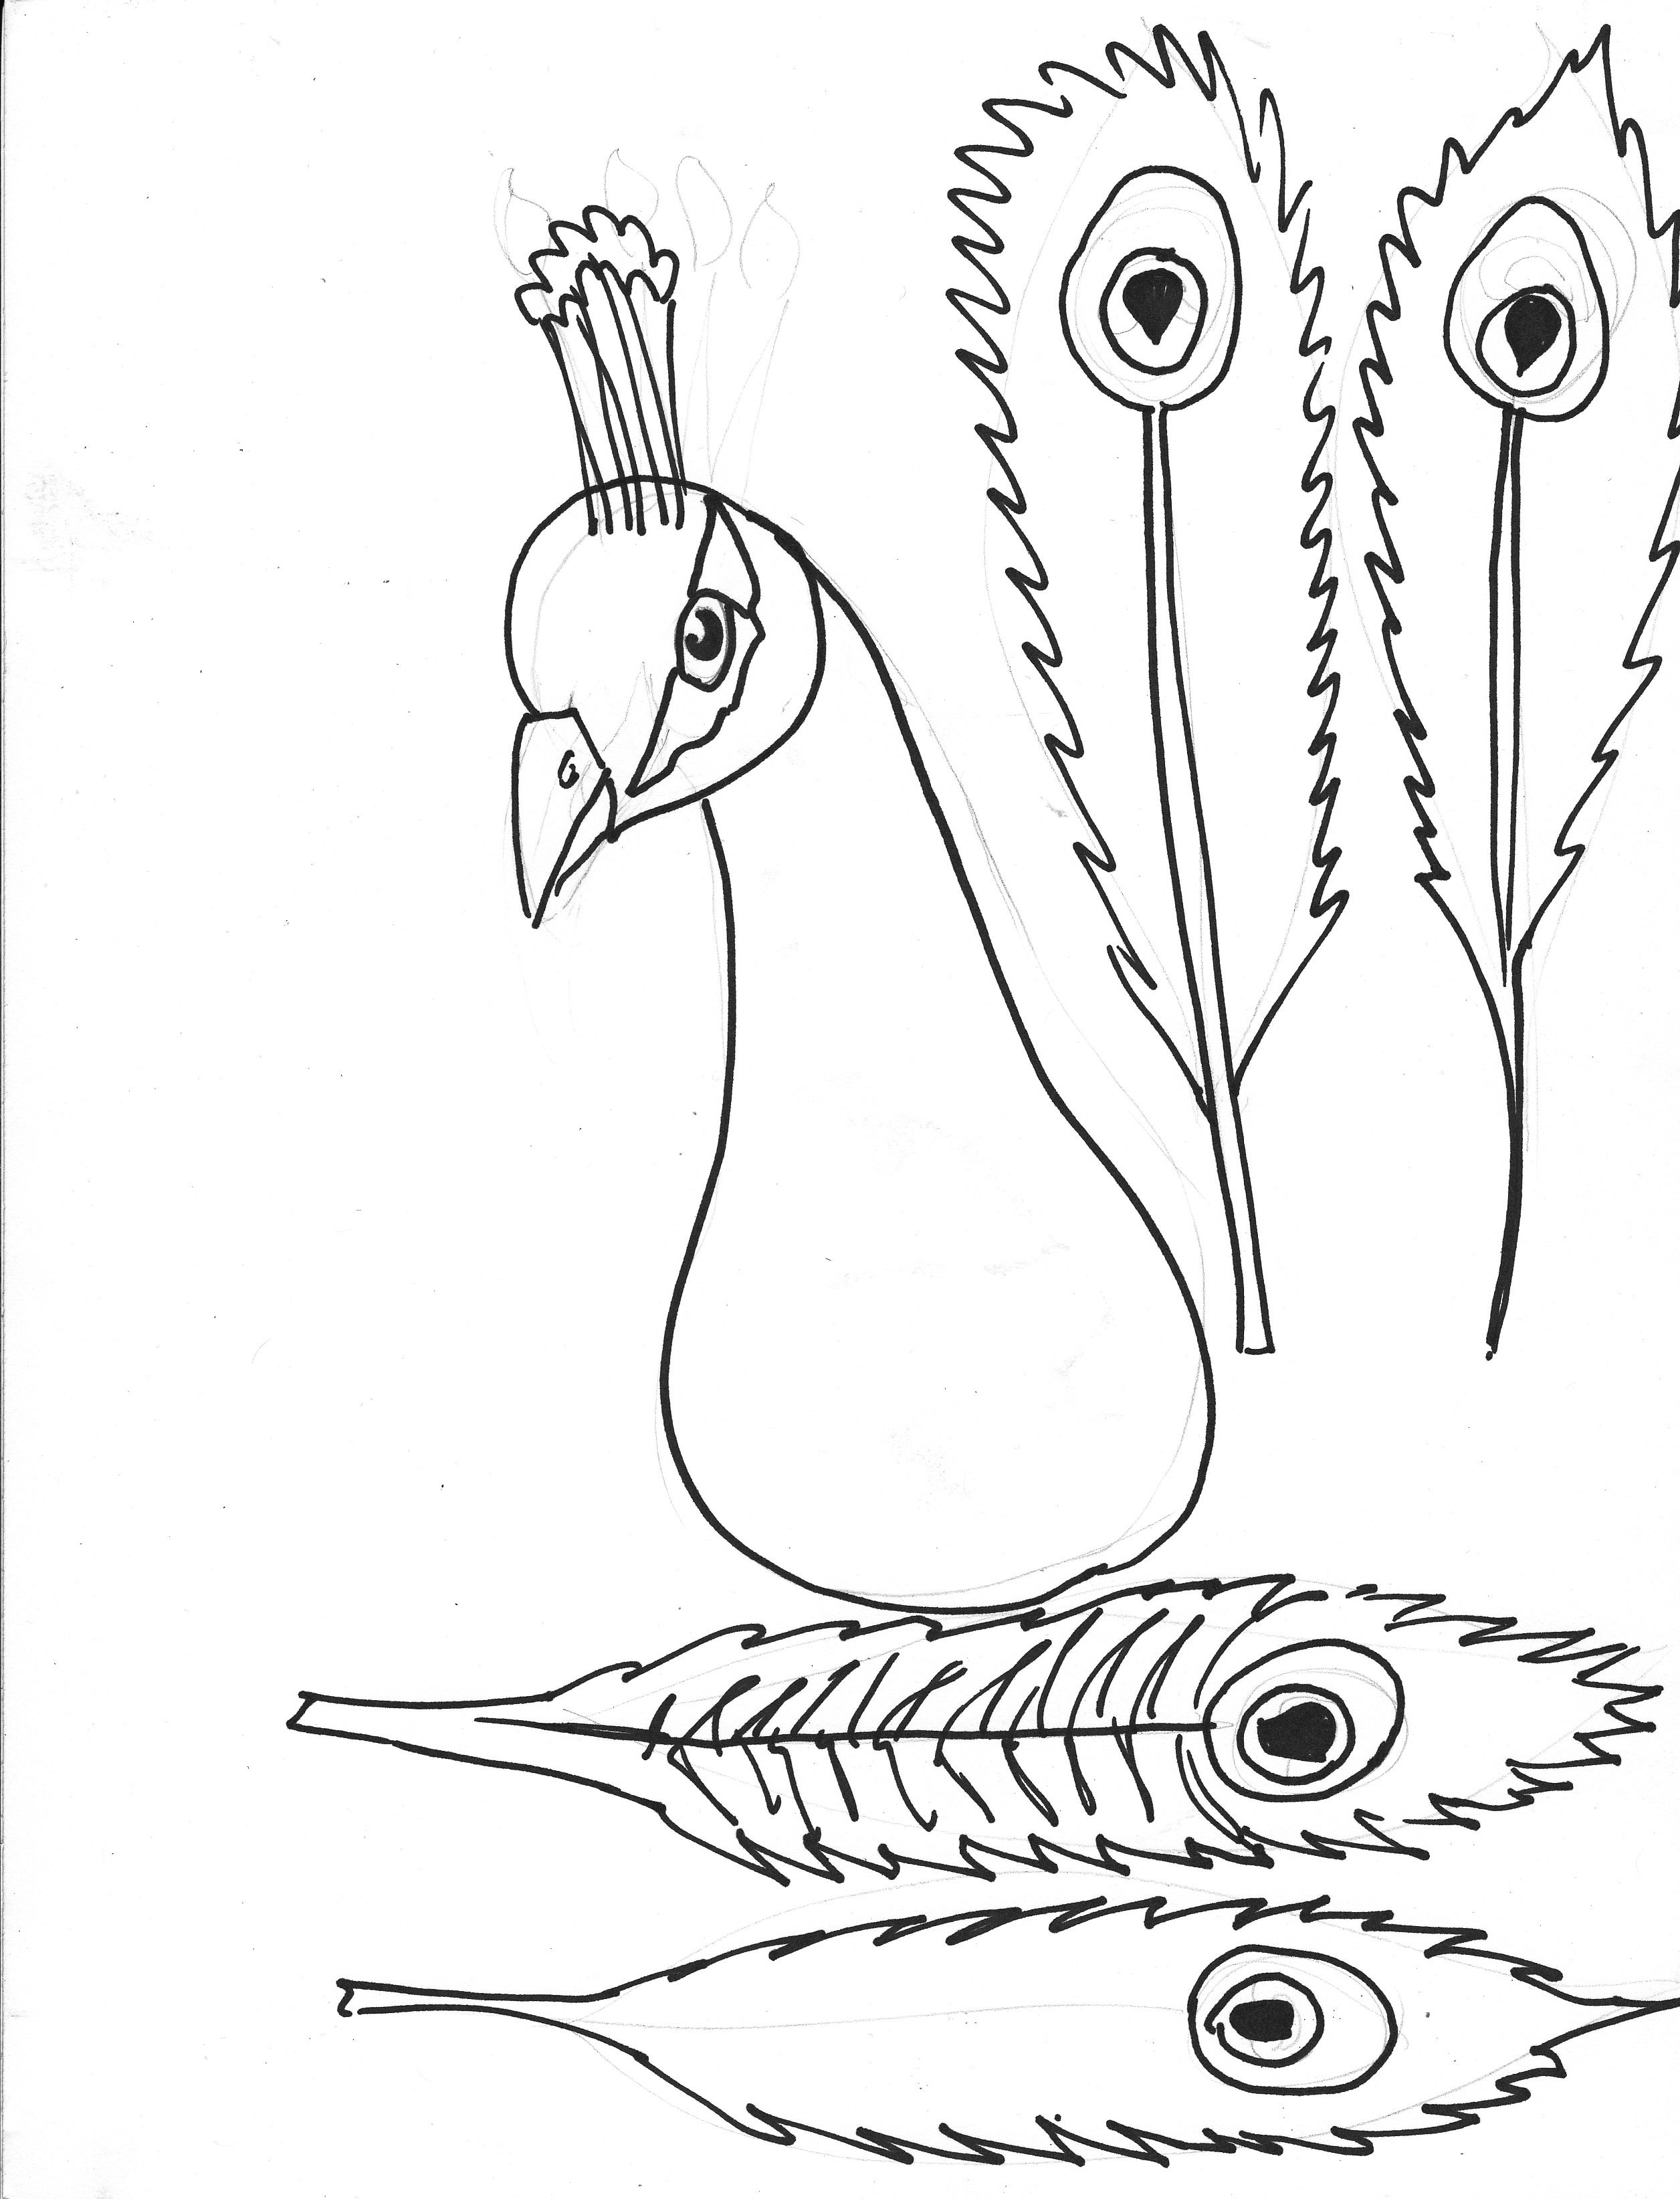 Peacock Coloring Pages For Kids Peacock Coloring Pages Peacock